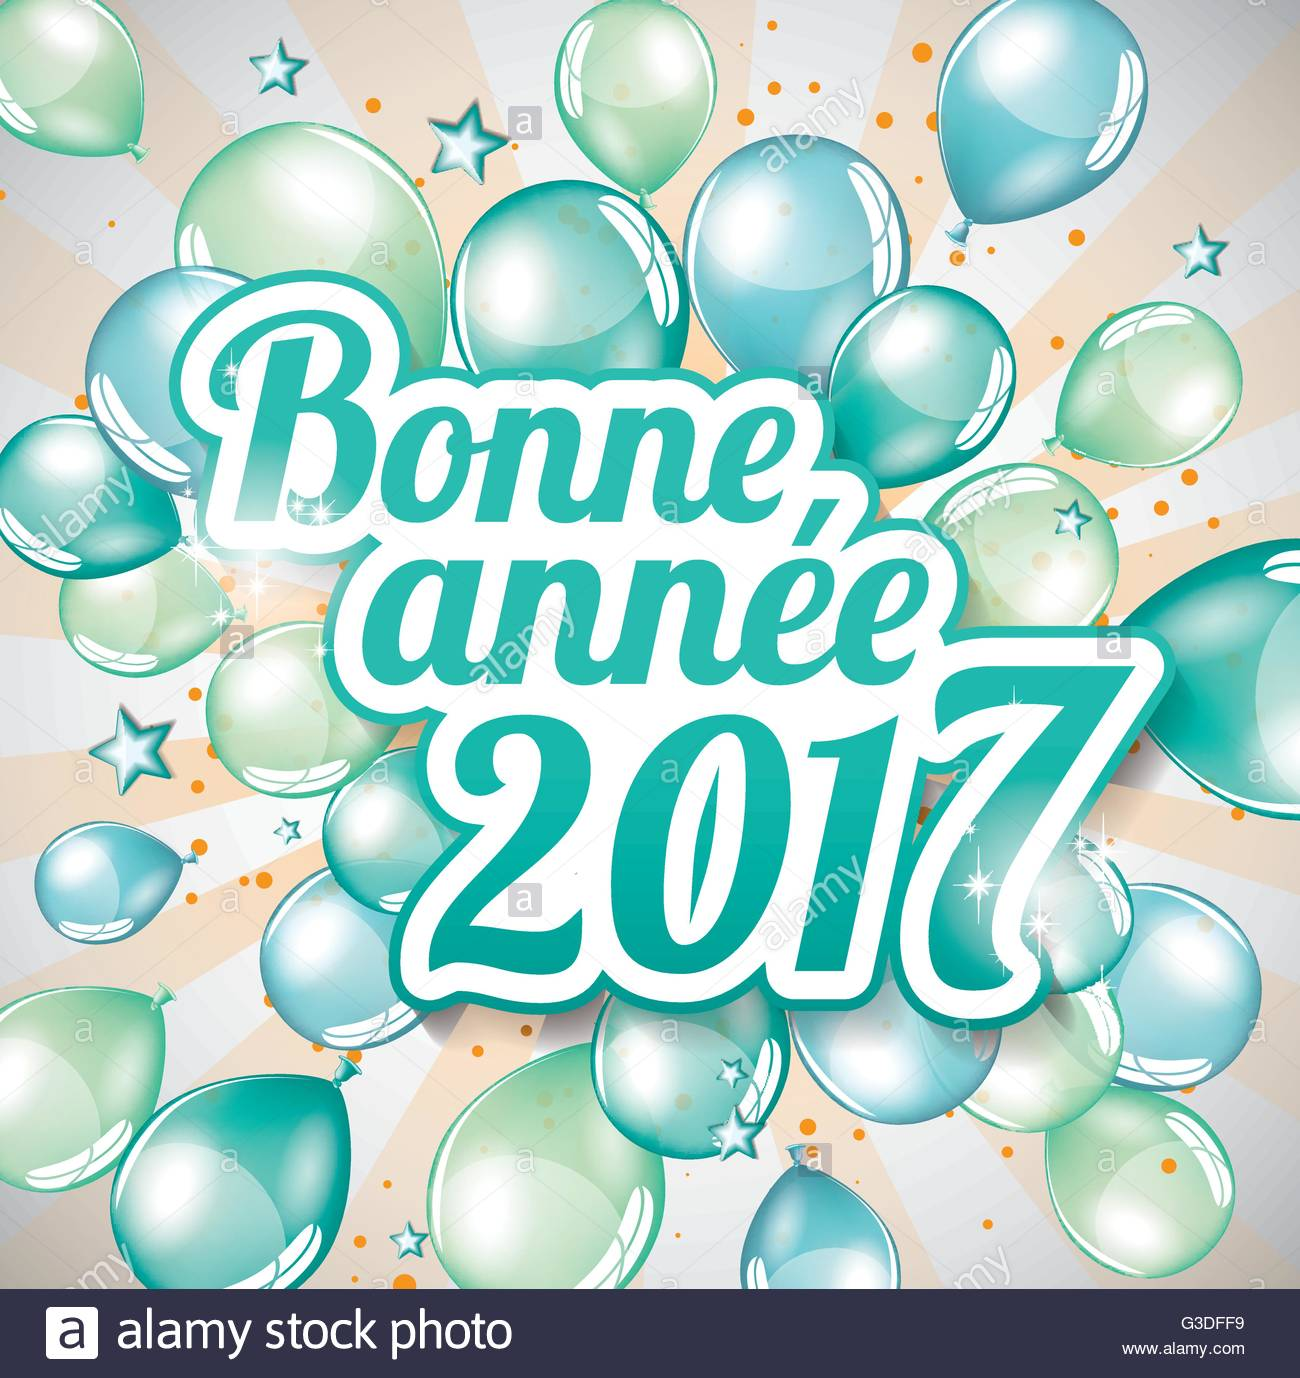 french new year cards